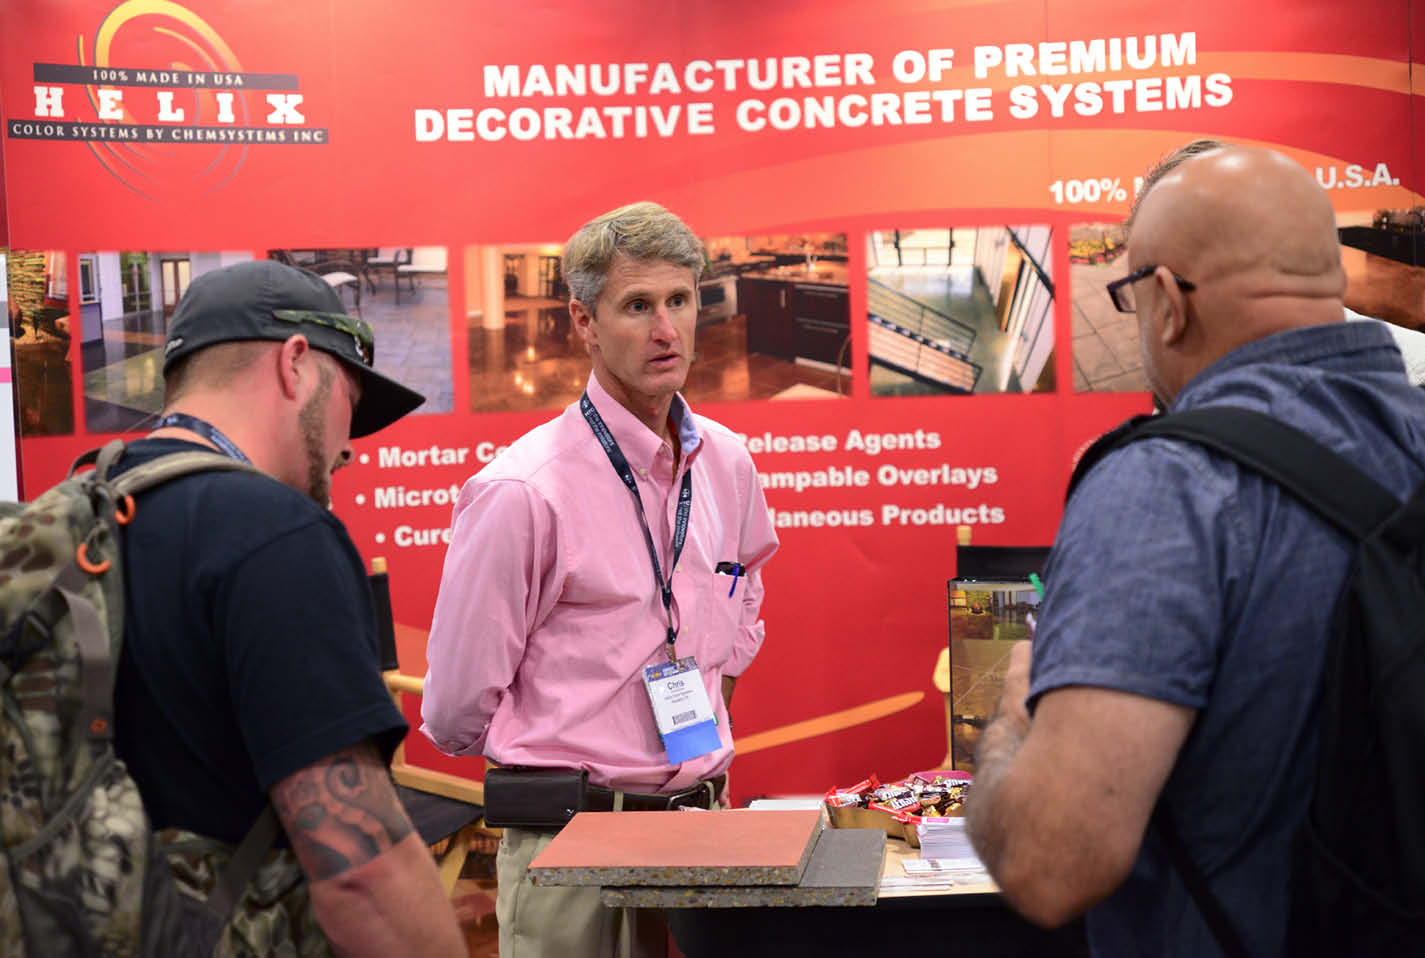 Chris Sullivan converses with Concrete Decor Show attendees at his company's booth. Truly a fount of knowledge, he regularly addresses decorative concrete trends in the educational lineup, as he will do again in 2019.